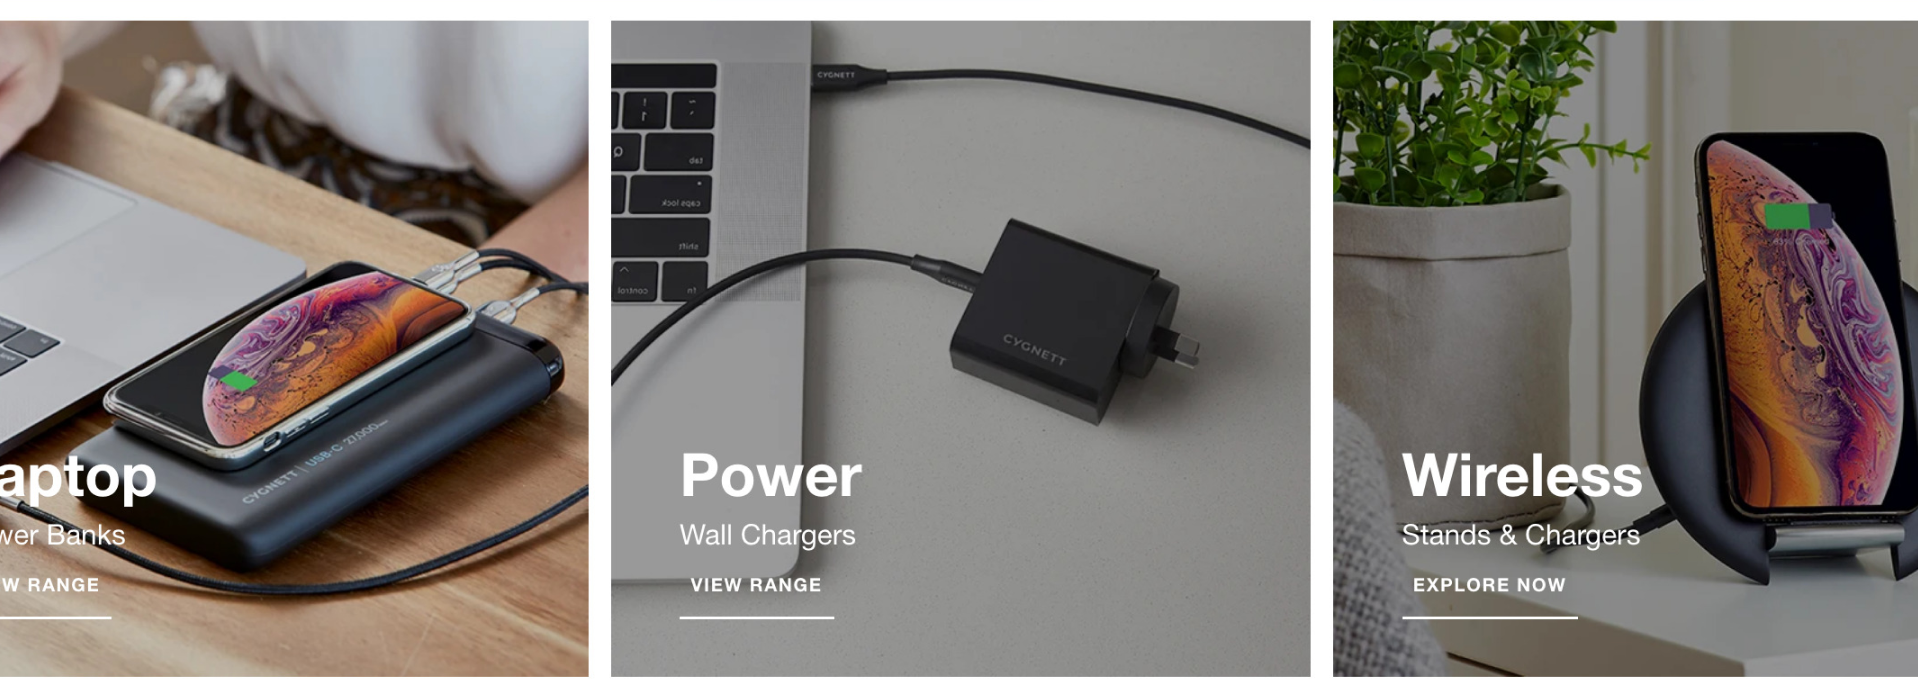 Cables, Smartphone Accessories Shopify Ecommerce Site